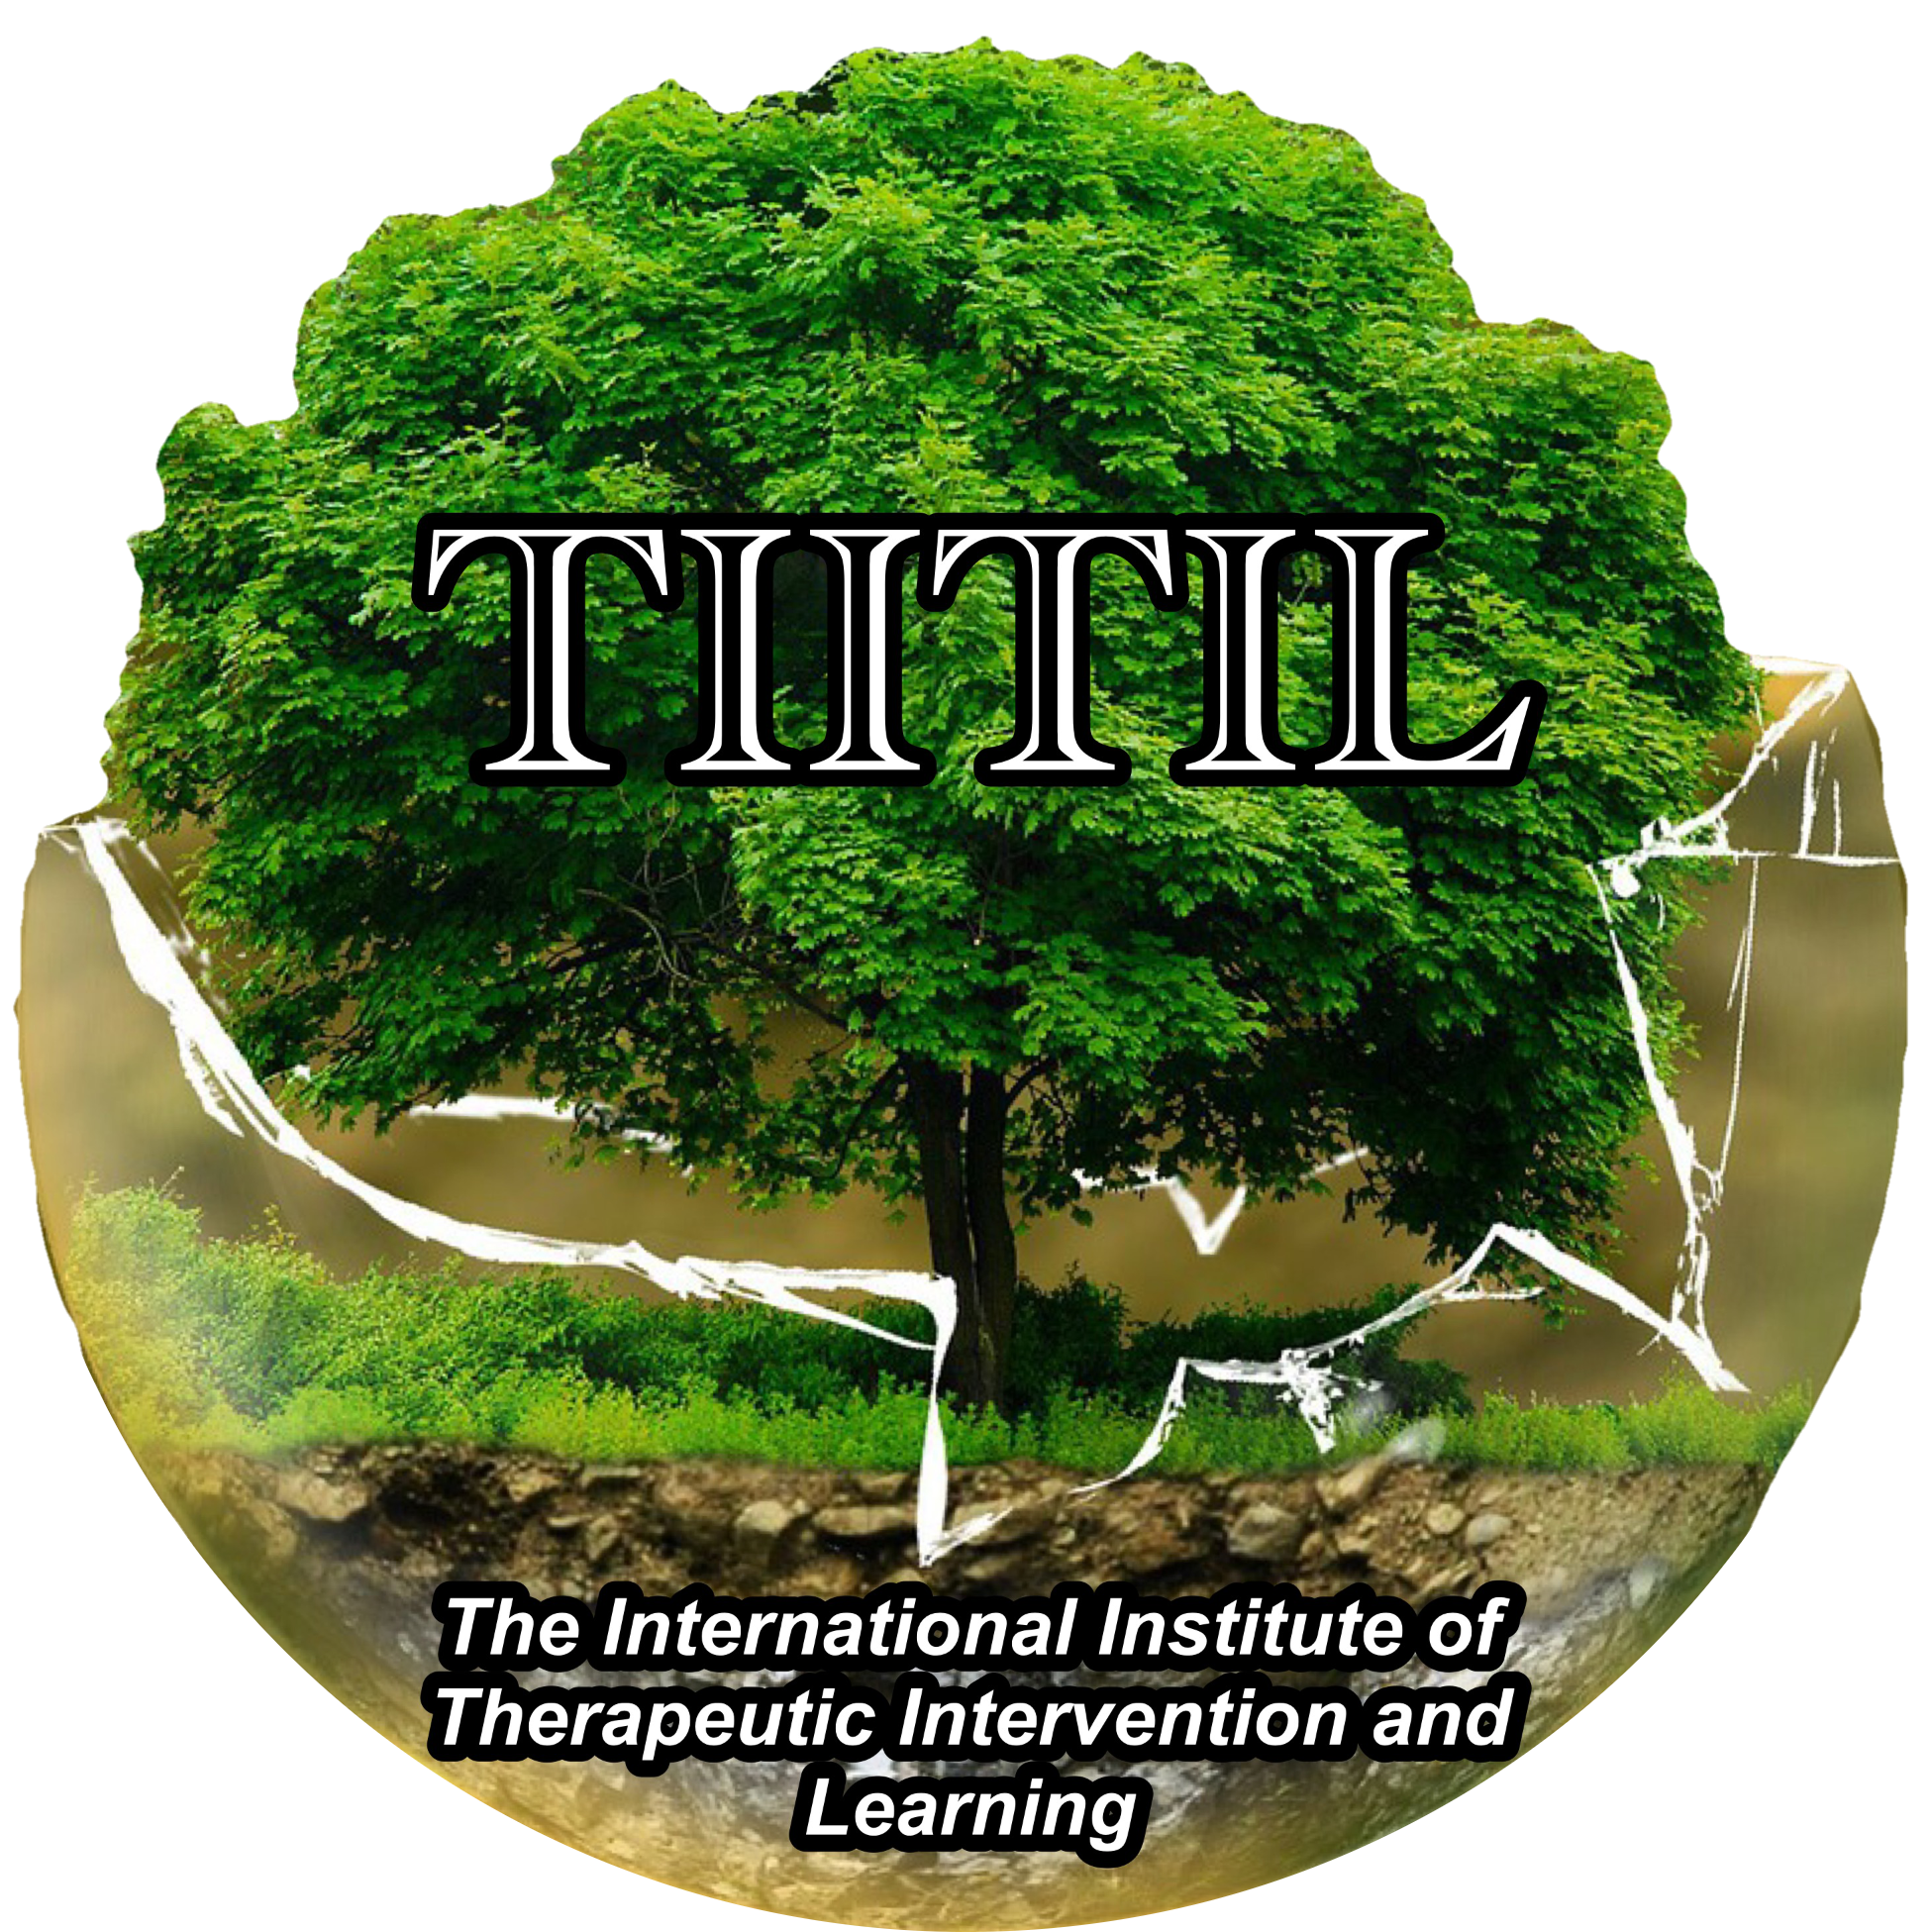 The International Institute of Therapeutic Intervention and Learning